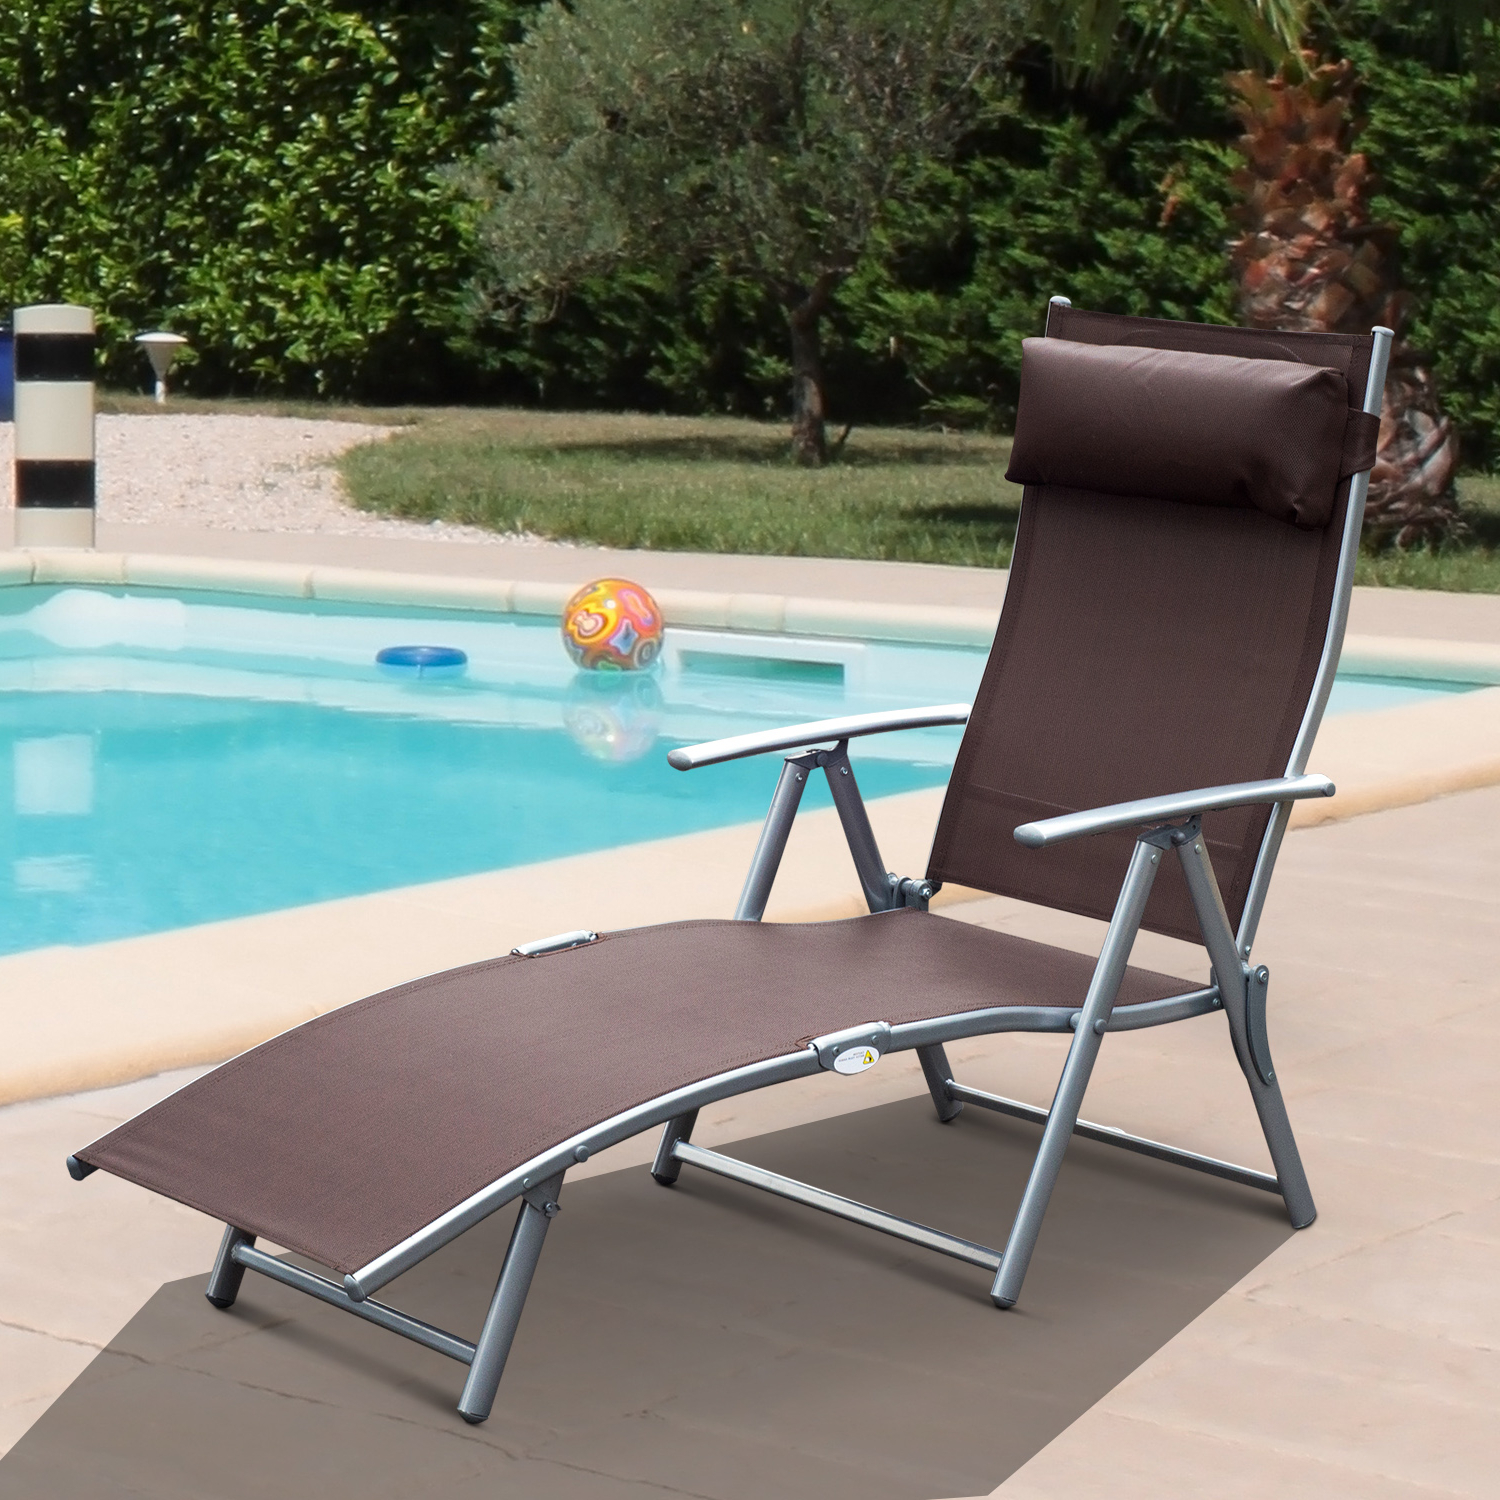 Adjustable Sling Fabric Patio Chaise Lounges In Well Known Details About Chaise Lounge Chair Folding Pool Beach Adjustable Patio  Furniture Recliner Brown (View 3 of 25)